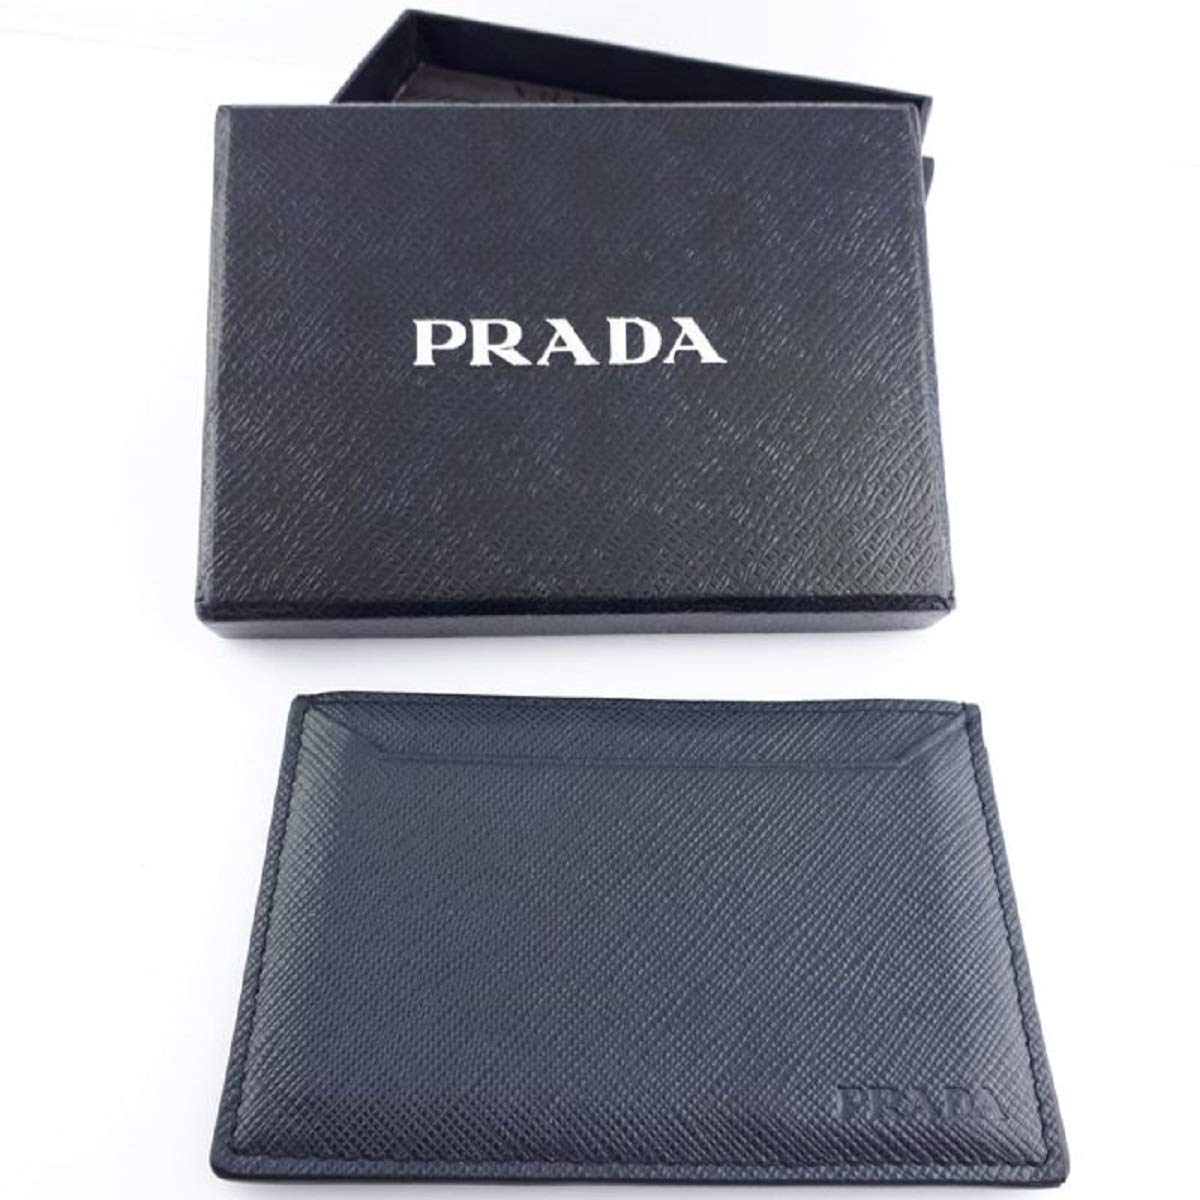 321ba3737eb0 Prada Baltico Navy Saffiano Men's Leather Wallet Credit Card Holder Case  Bill 2MC208 at Amazon Men's Clothing store: